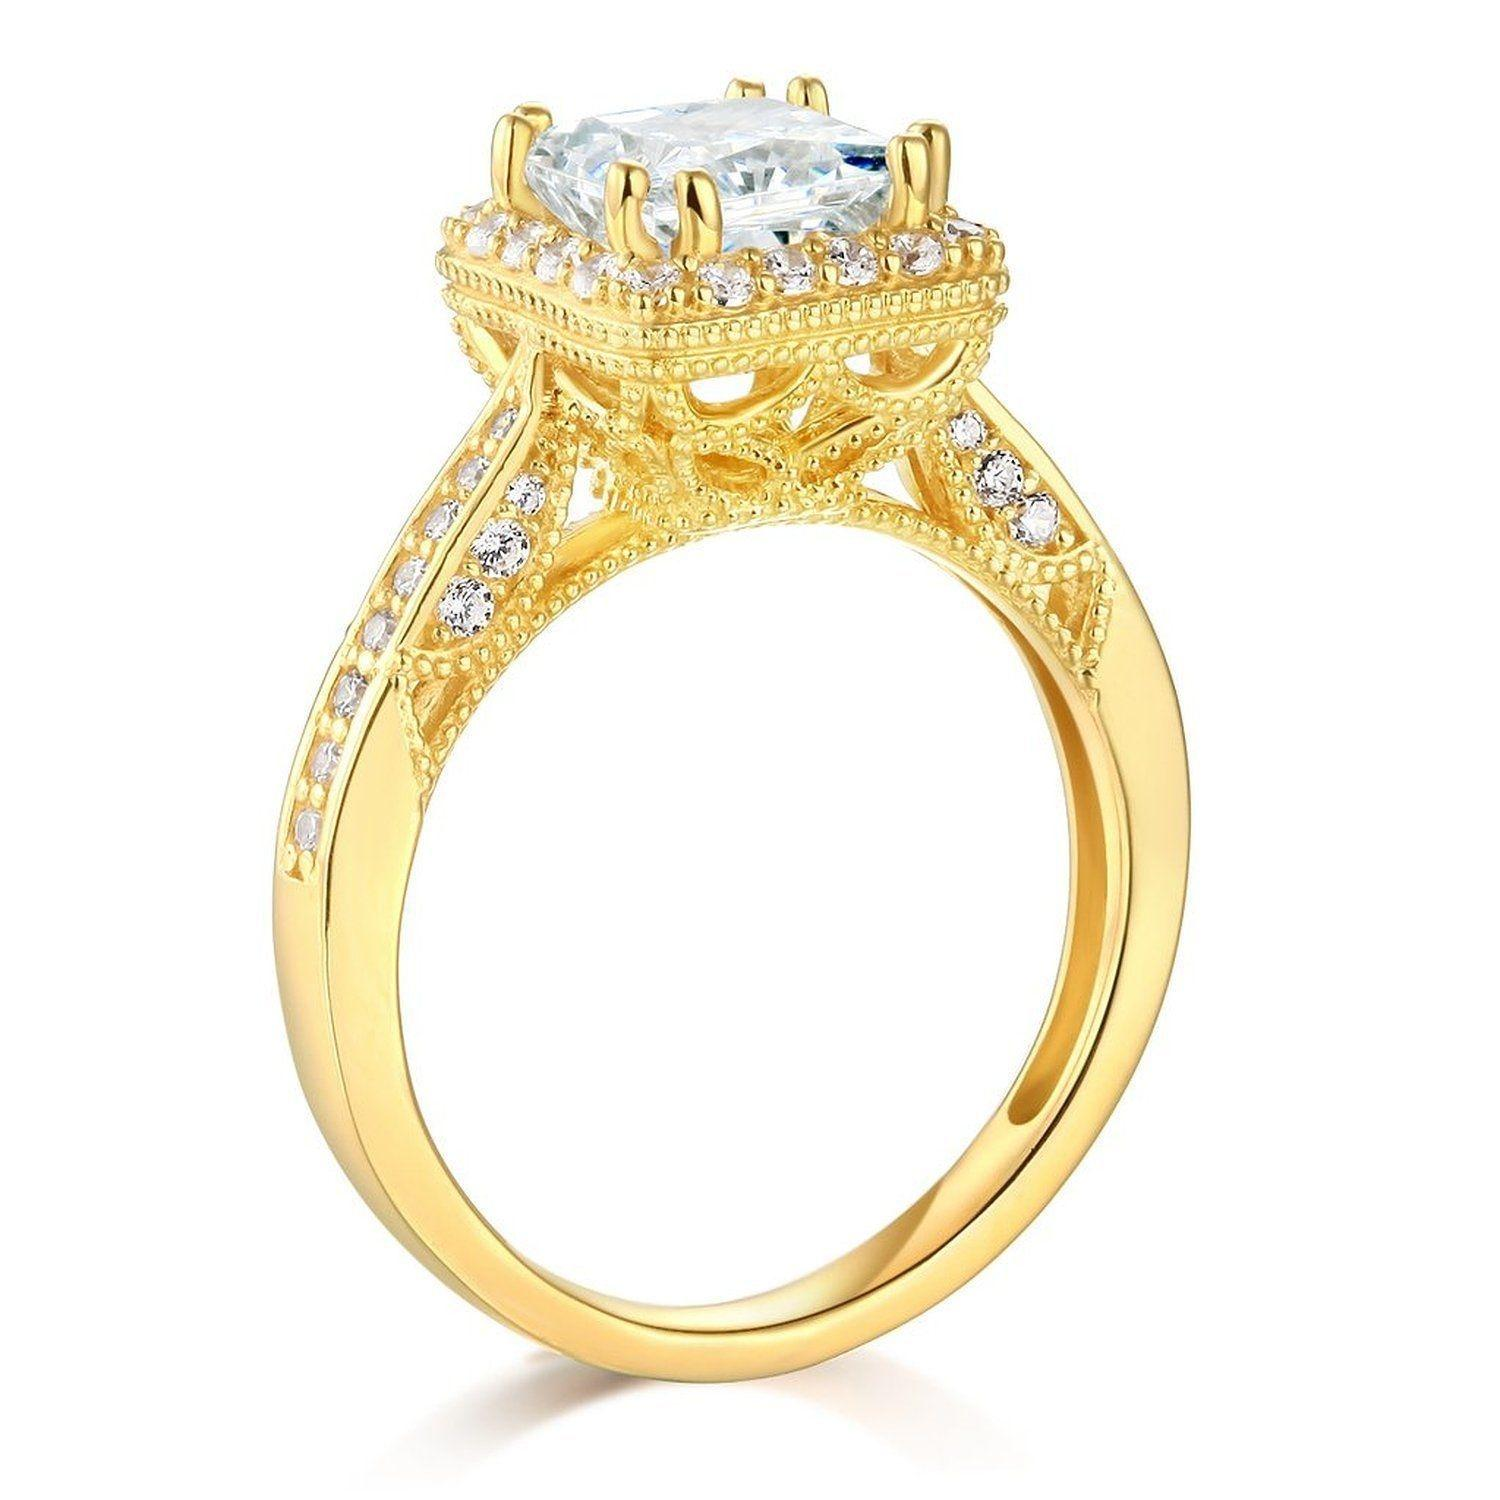 Which To Choose: White Gold Ring Or Yellow Gold?